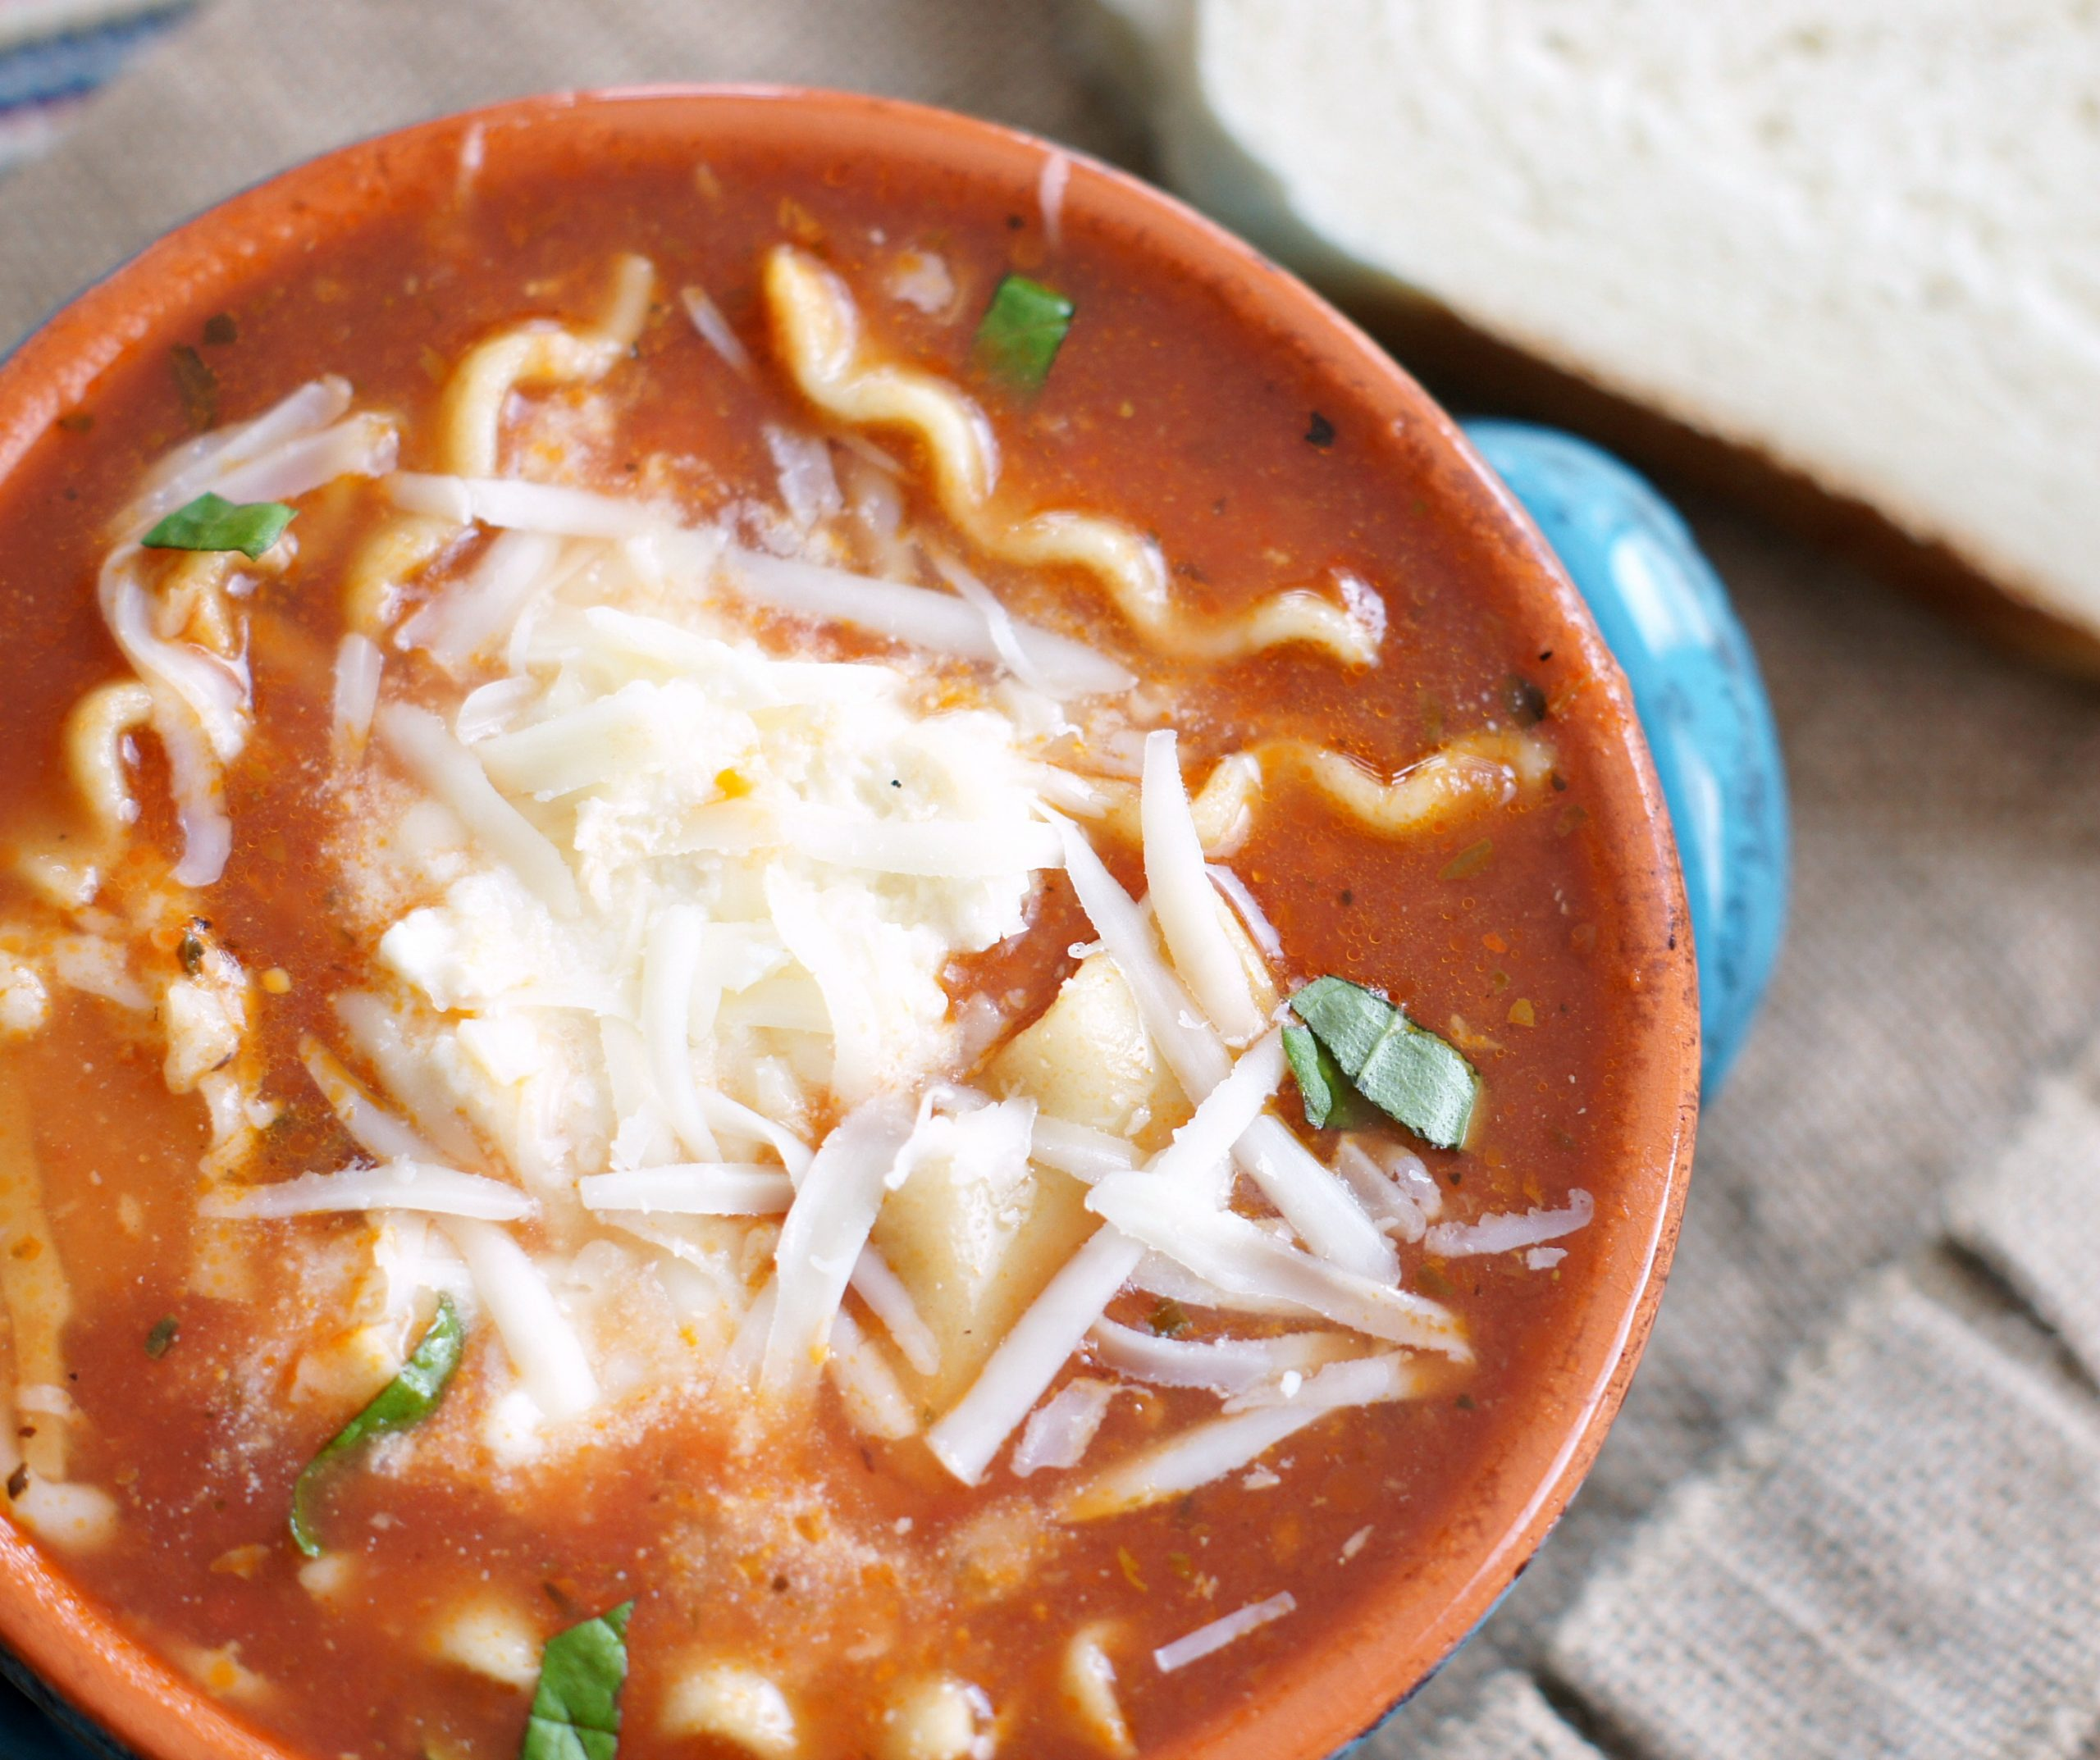 Bowl of lasagna soup with cheesy topping